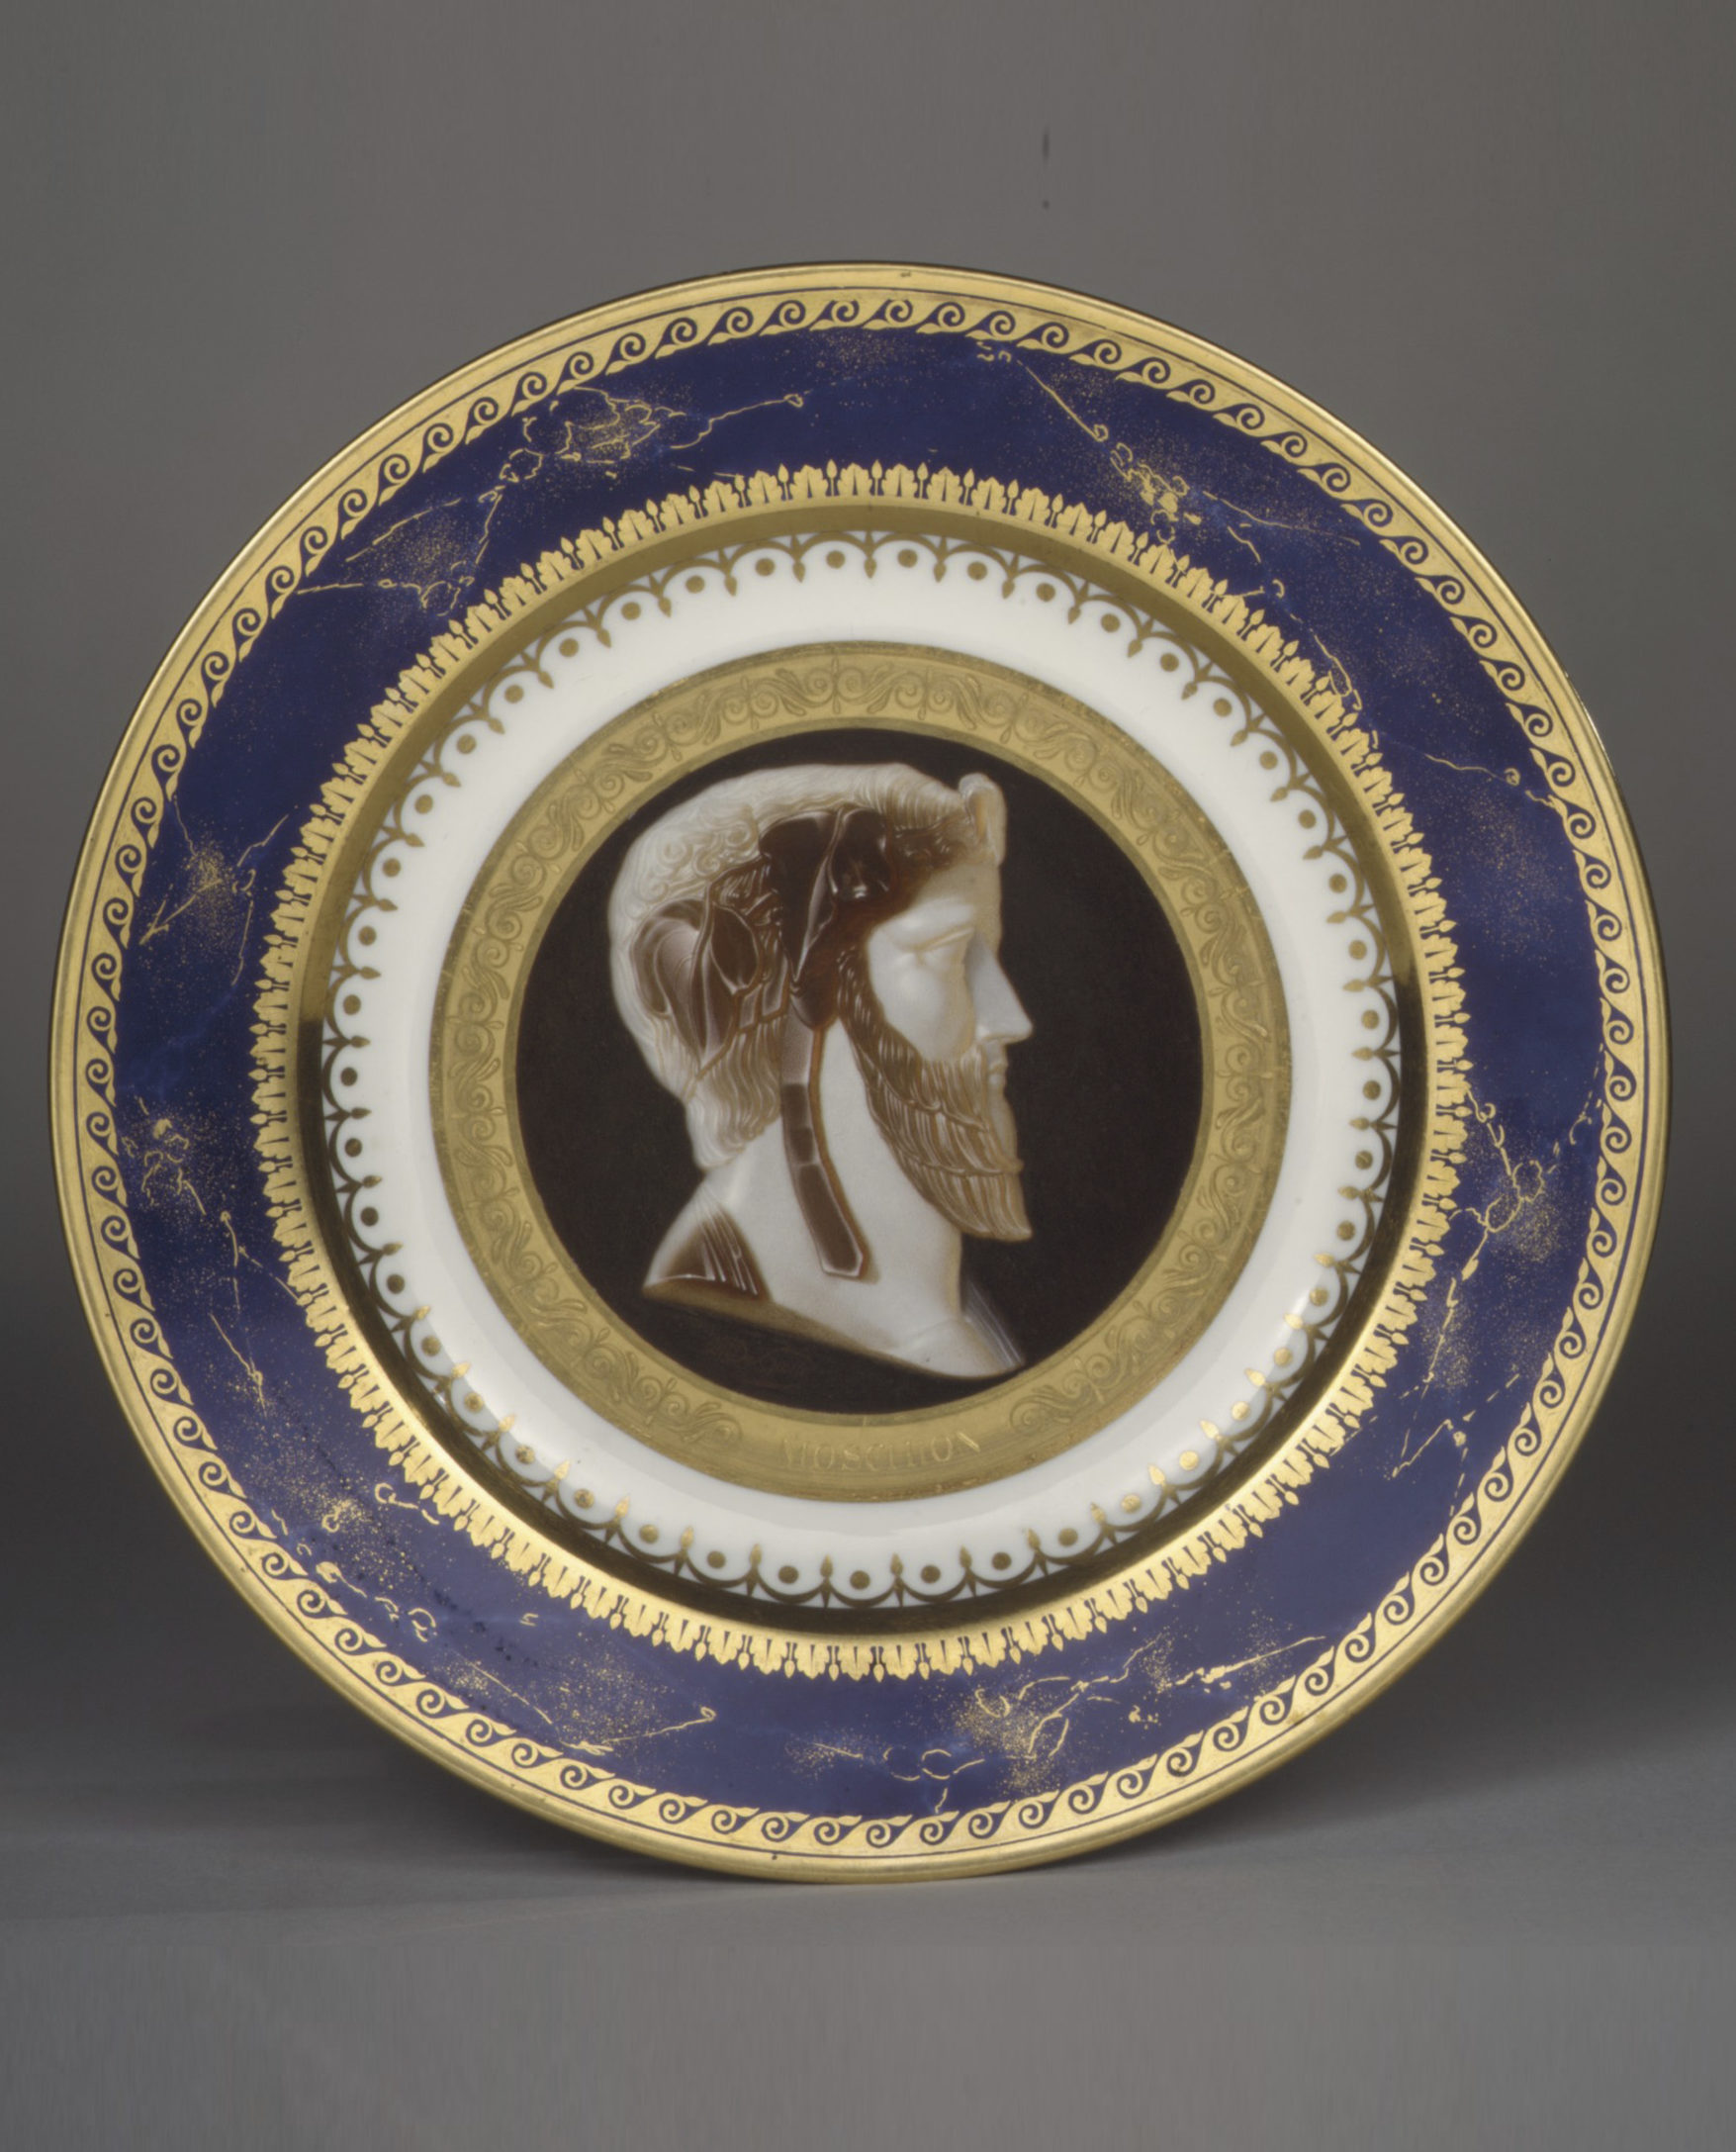 Sèvres plate with imaginary portrait of the tragic poet Moschion, 1811-18. (Metropolitan Museum of Art, The Charles E. Sampson Memorial Fund, 1989, Inv. no. 1989.84)